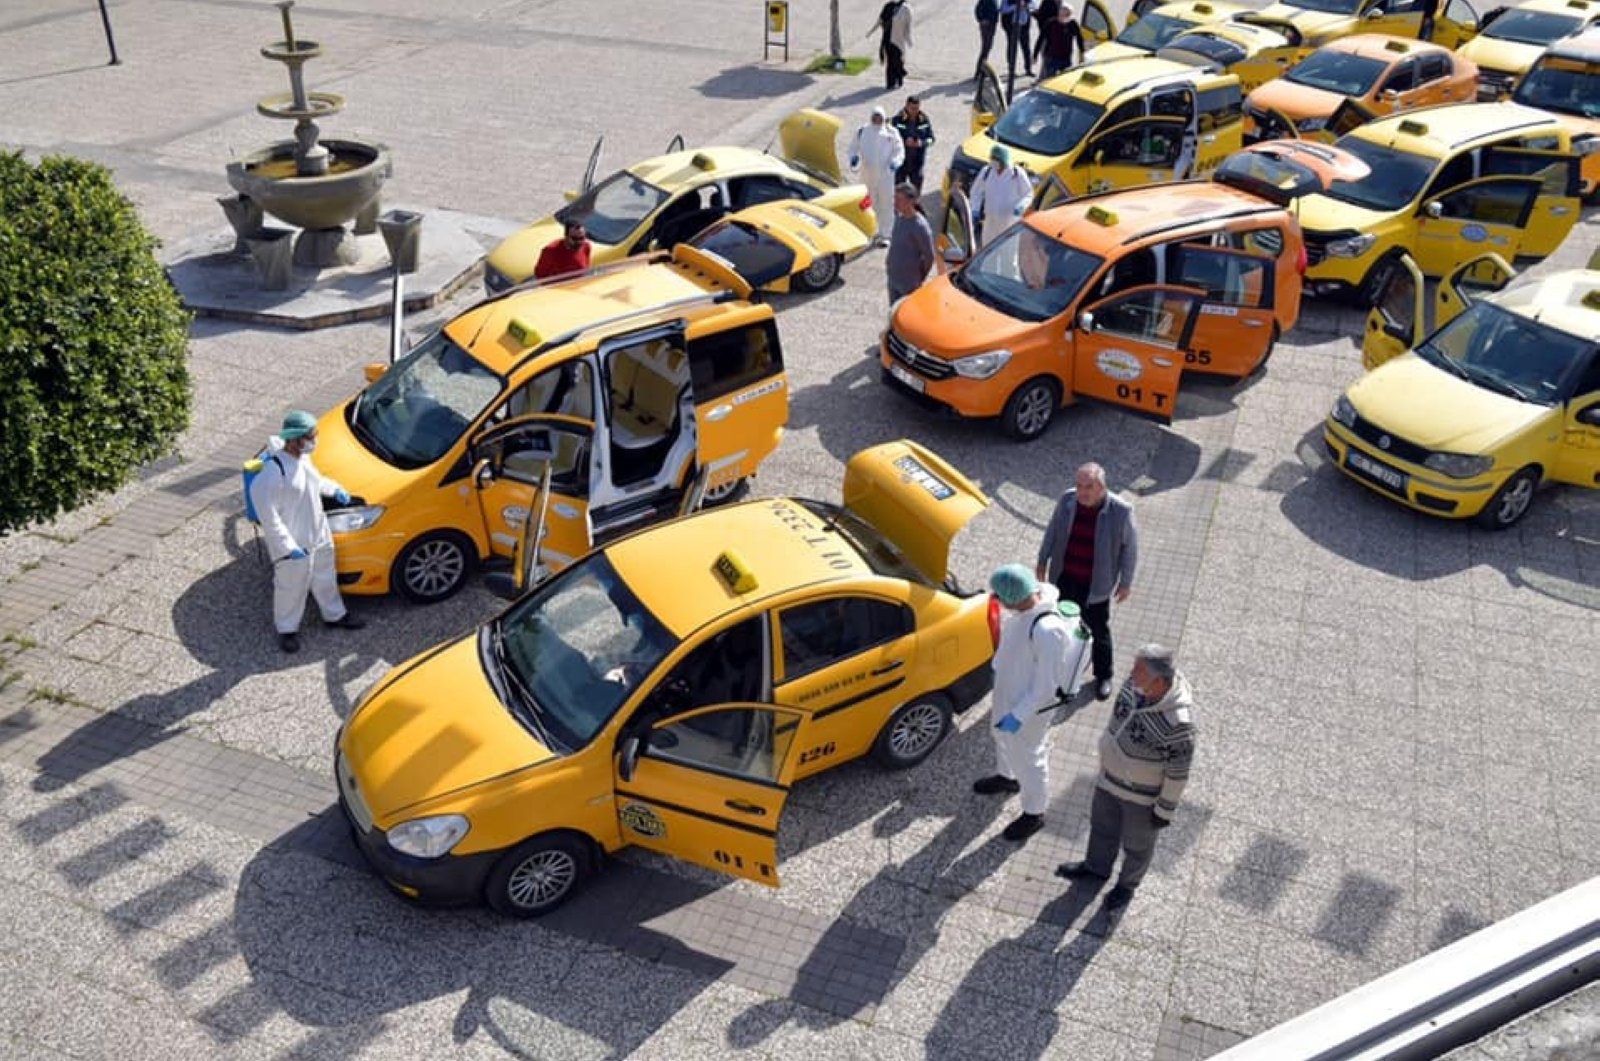 Taxis are disinfected as a measure to prevent the spread of the coronavirus, Çukurova district, Adana province, Turkey, Friday, March 27, 2020. (İHA Photo)